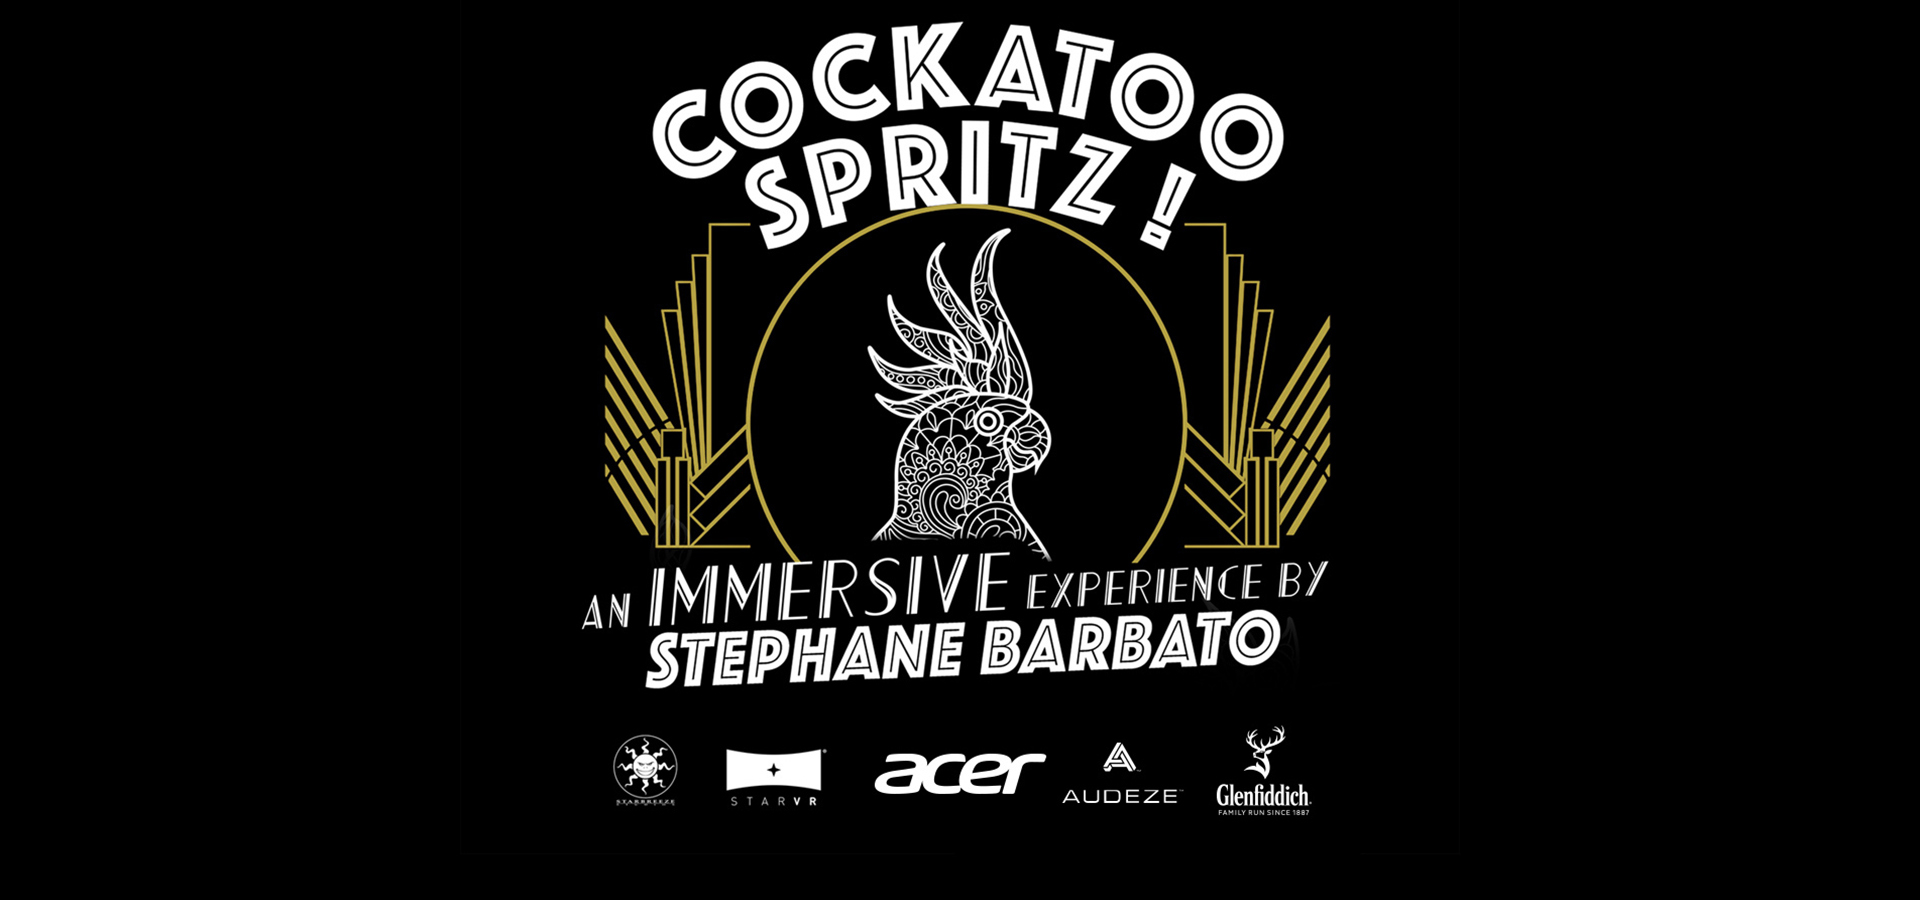 """Premiering the Cinematic VR-experiene """"Cockatoo Spritz"""" at Cannes May 11-20"""